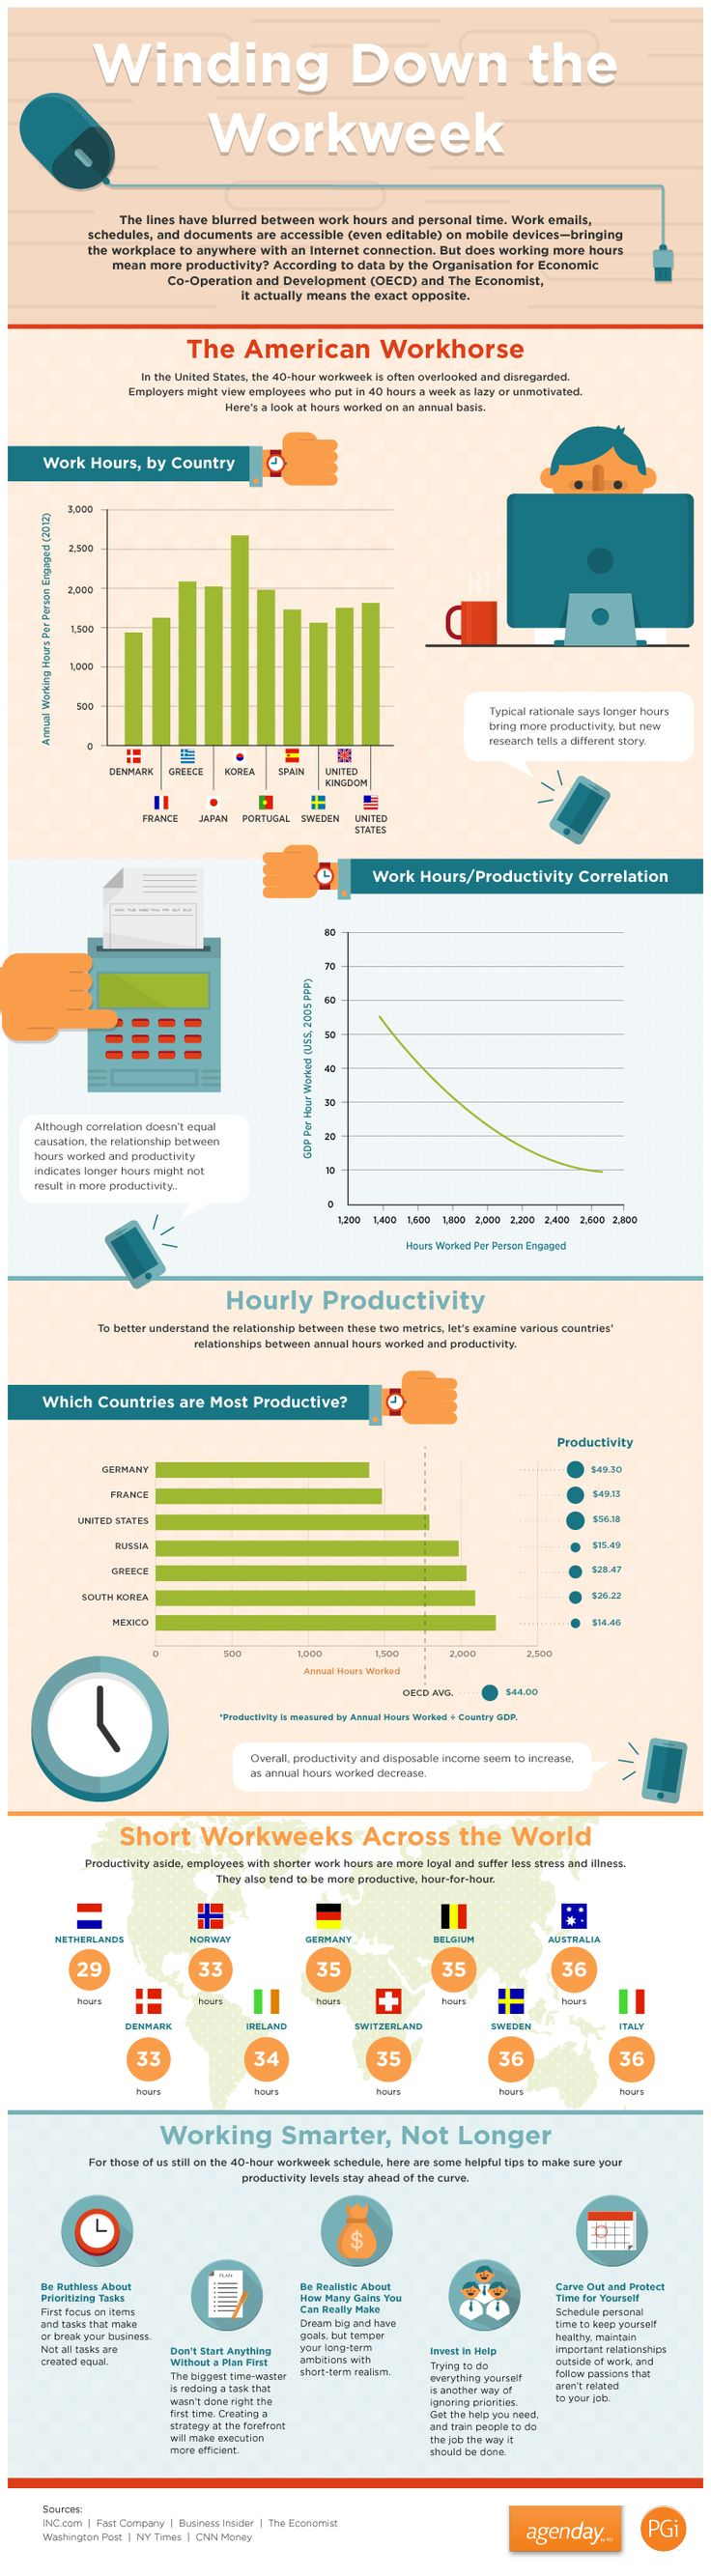 The Case for Shorter Work Weeks (Infographic) | Inc.com #Infographic #Work_Week #Productivity